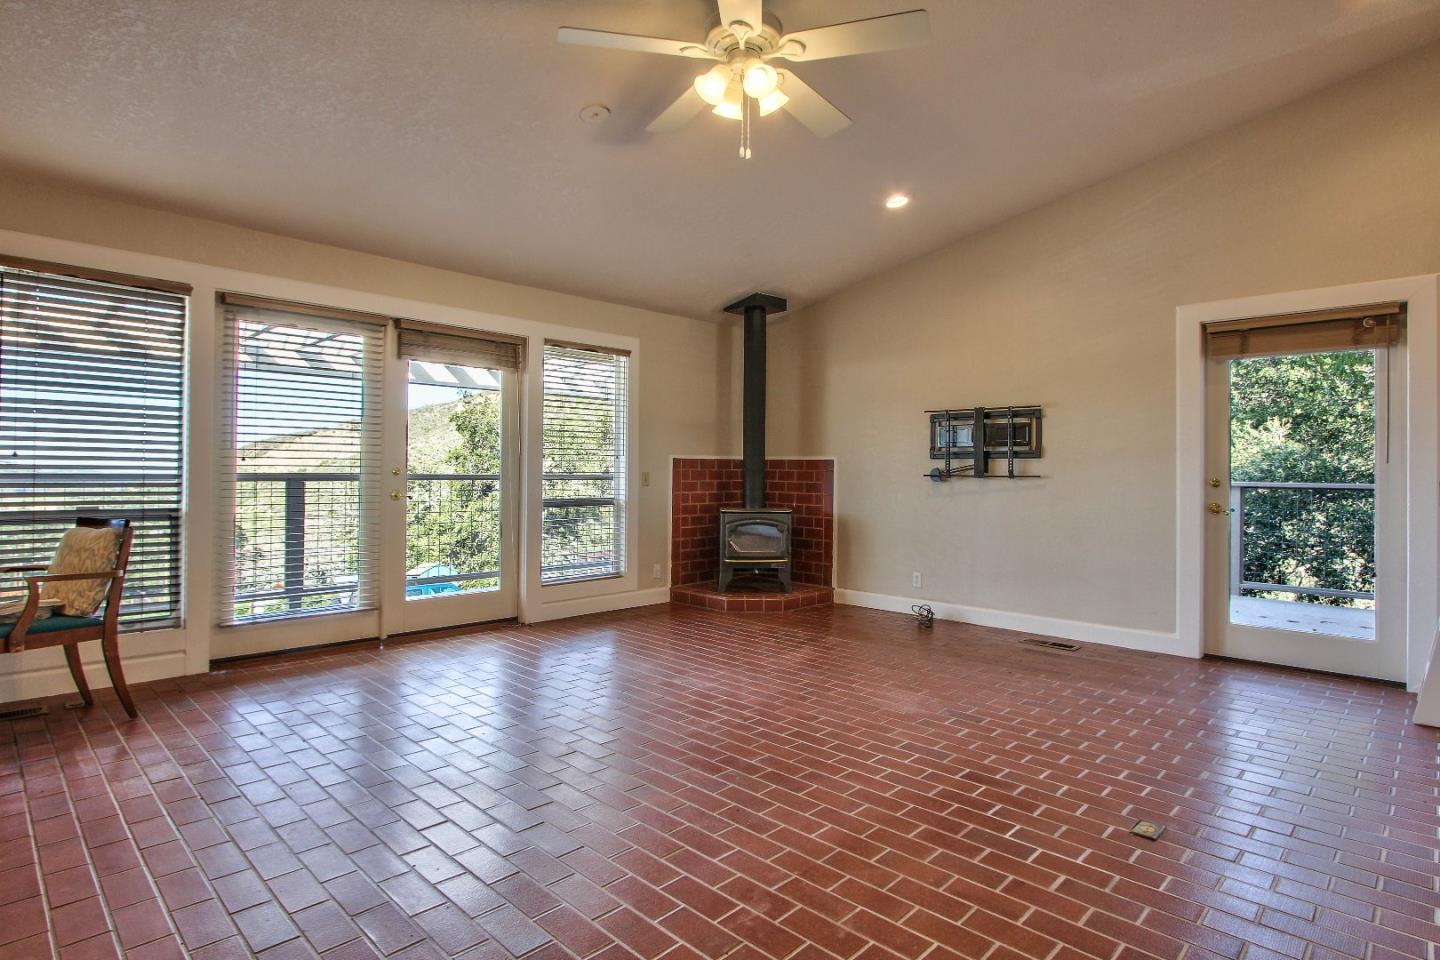 Additional photo for property listing at 26455 Tierra Vista Lane  Salinas, Kalifornien 93908 Vereinigte Staaten